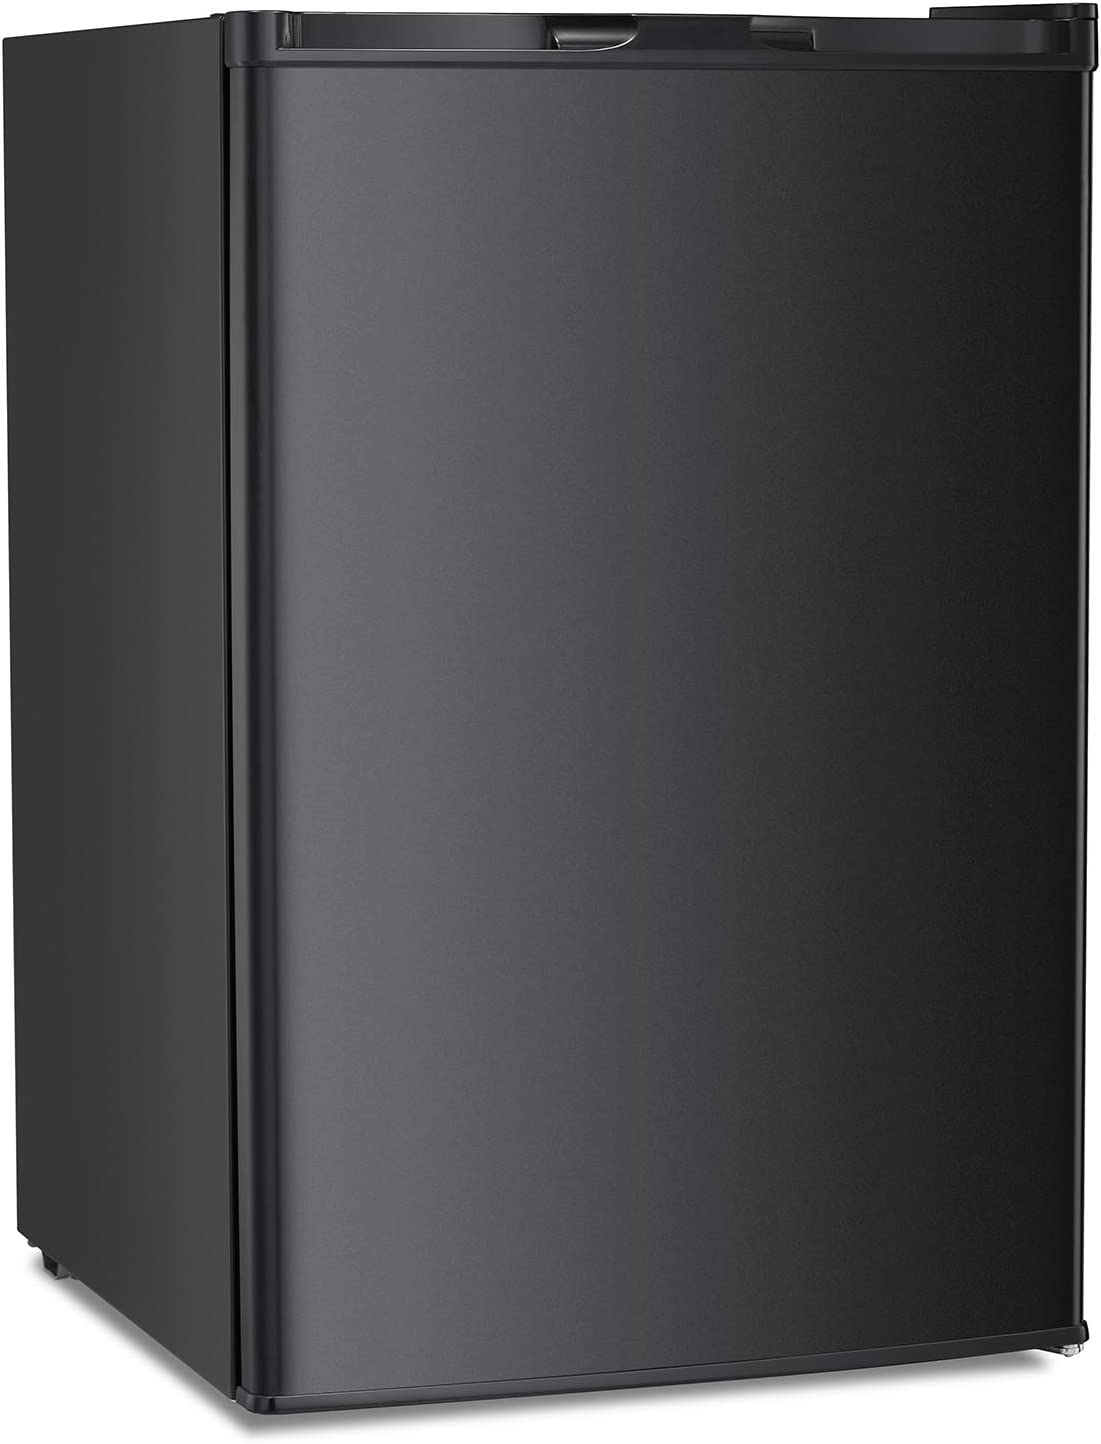 Antarctic Star Compact Chest Upright Freezer Single Door Reversible Stainless Steel Door, Compact Adjustable Removable Shelves for Home Office, 3.0 cu.Black